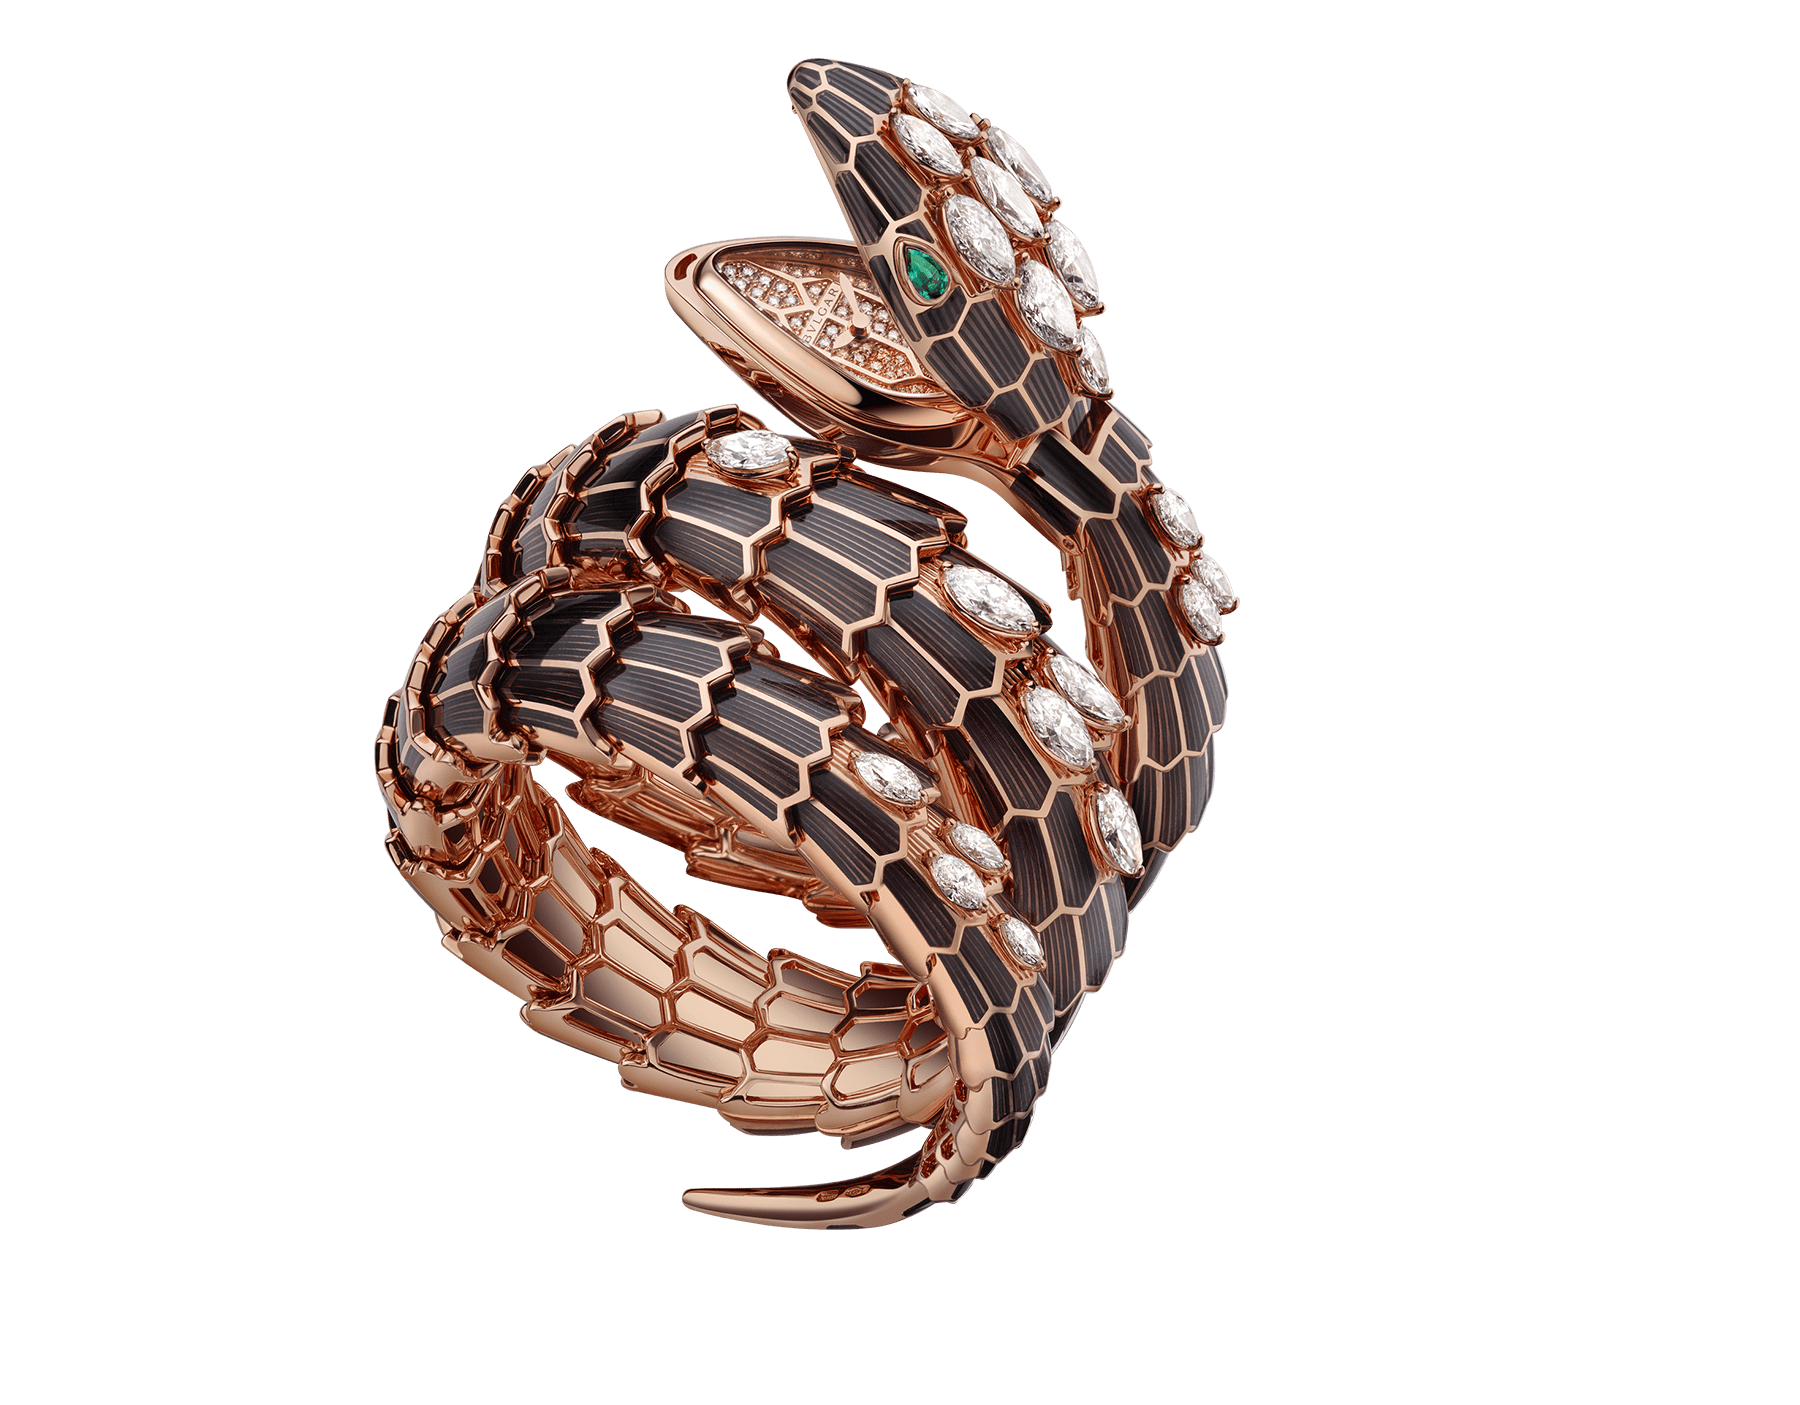 Serpenti Secret Watch with 18 kt rose gold head and double spiral bracelet, both coated with black lacquer and set with marquise cut diamonds, emerald eyes, 18 kt rose gold case and 18 kt rose gold dial set with brilliant cut diamonds. 102526 image 1